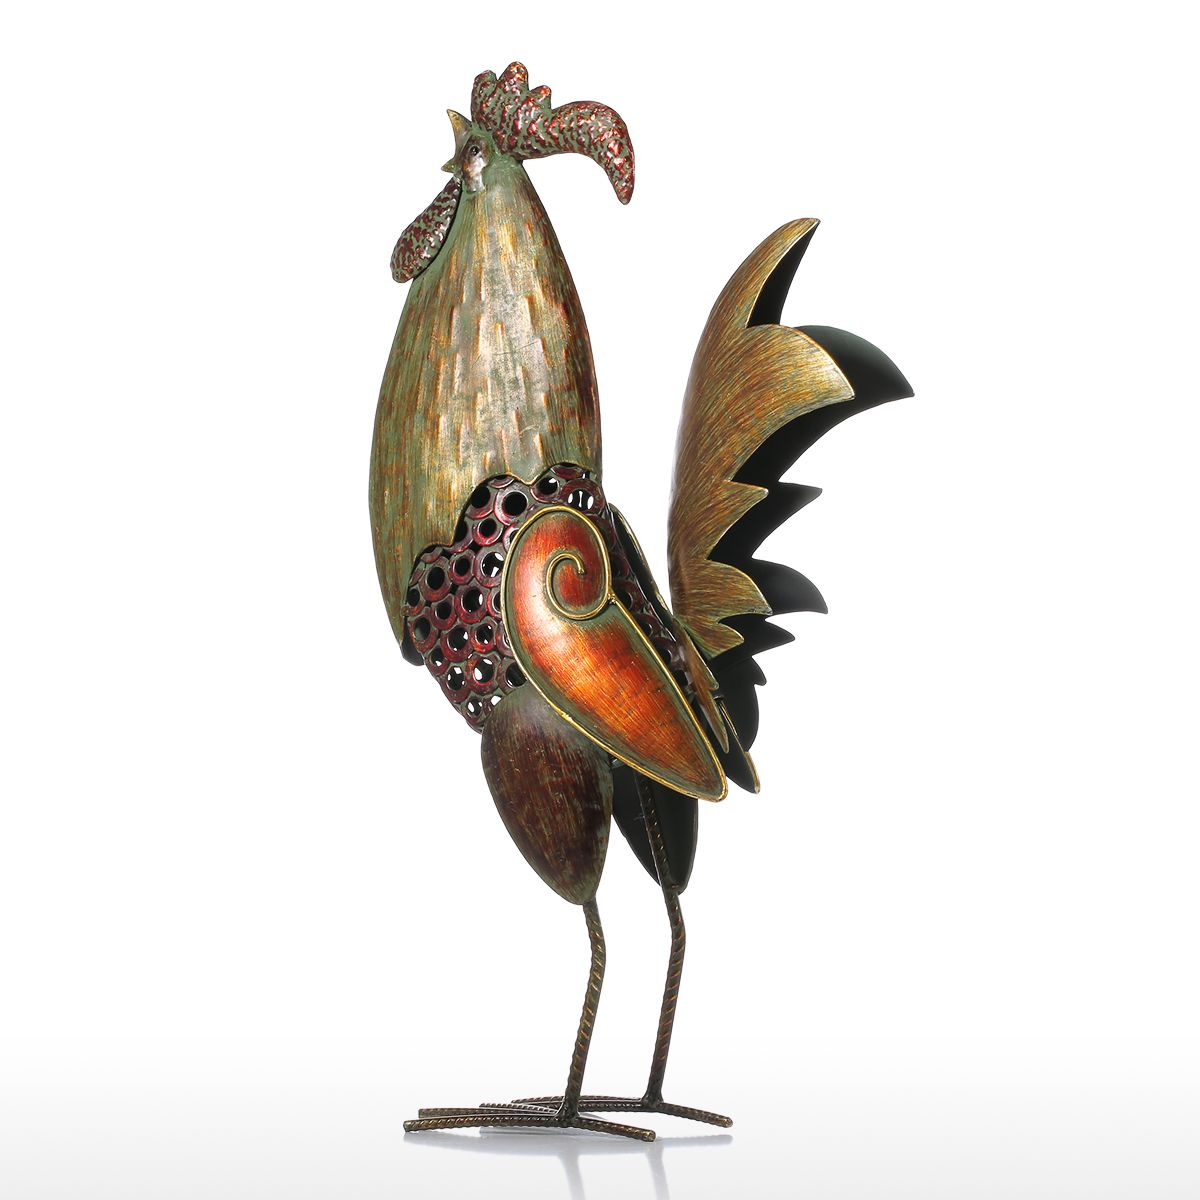 Tooarts Metal Figurine Iron Rooster Home Decor Articles: Best And Cheap Red Tooarts Iron Rooster Home Decor Iron